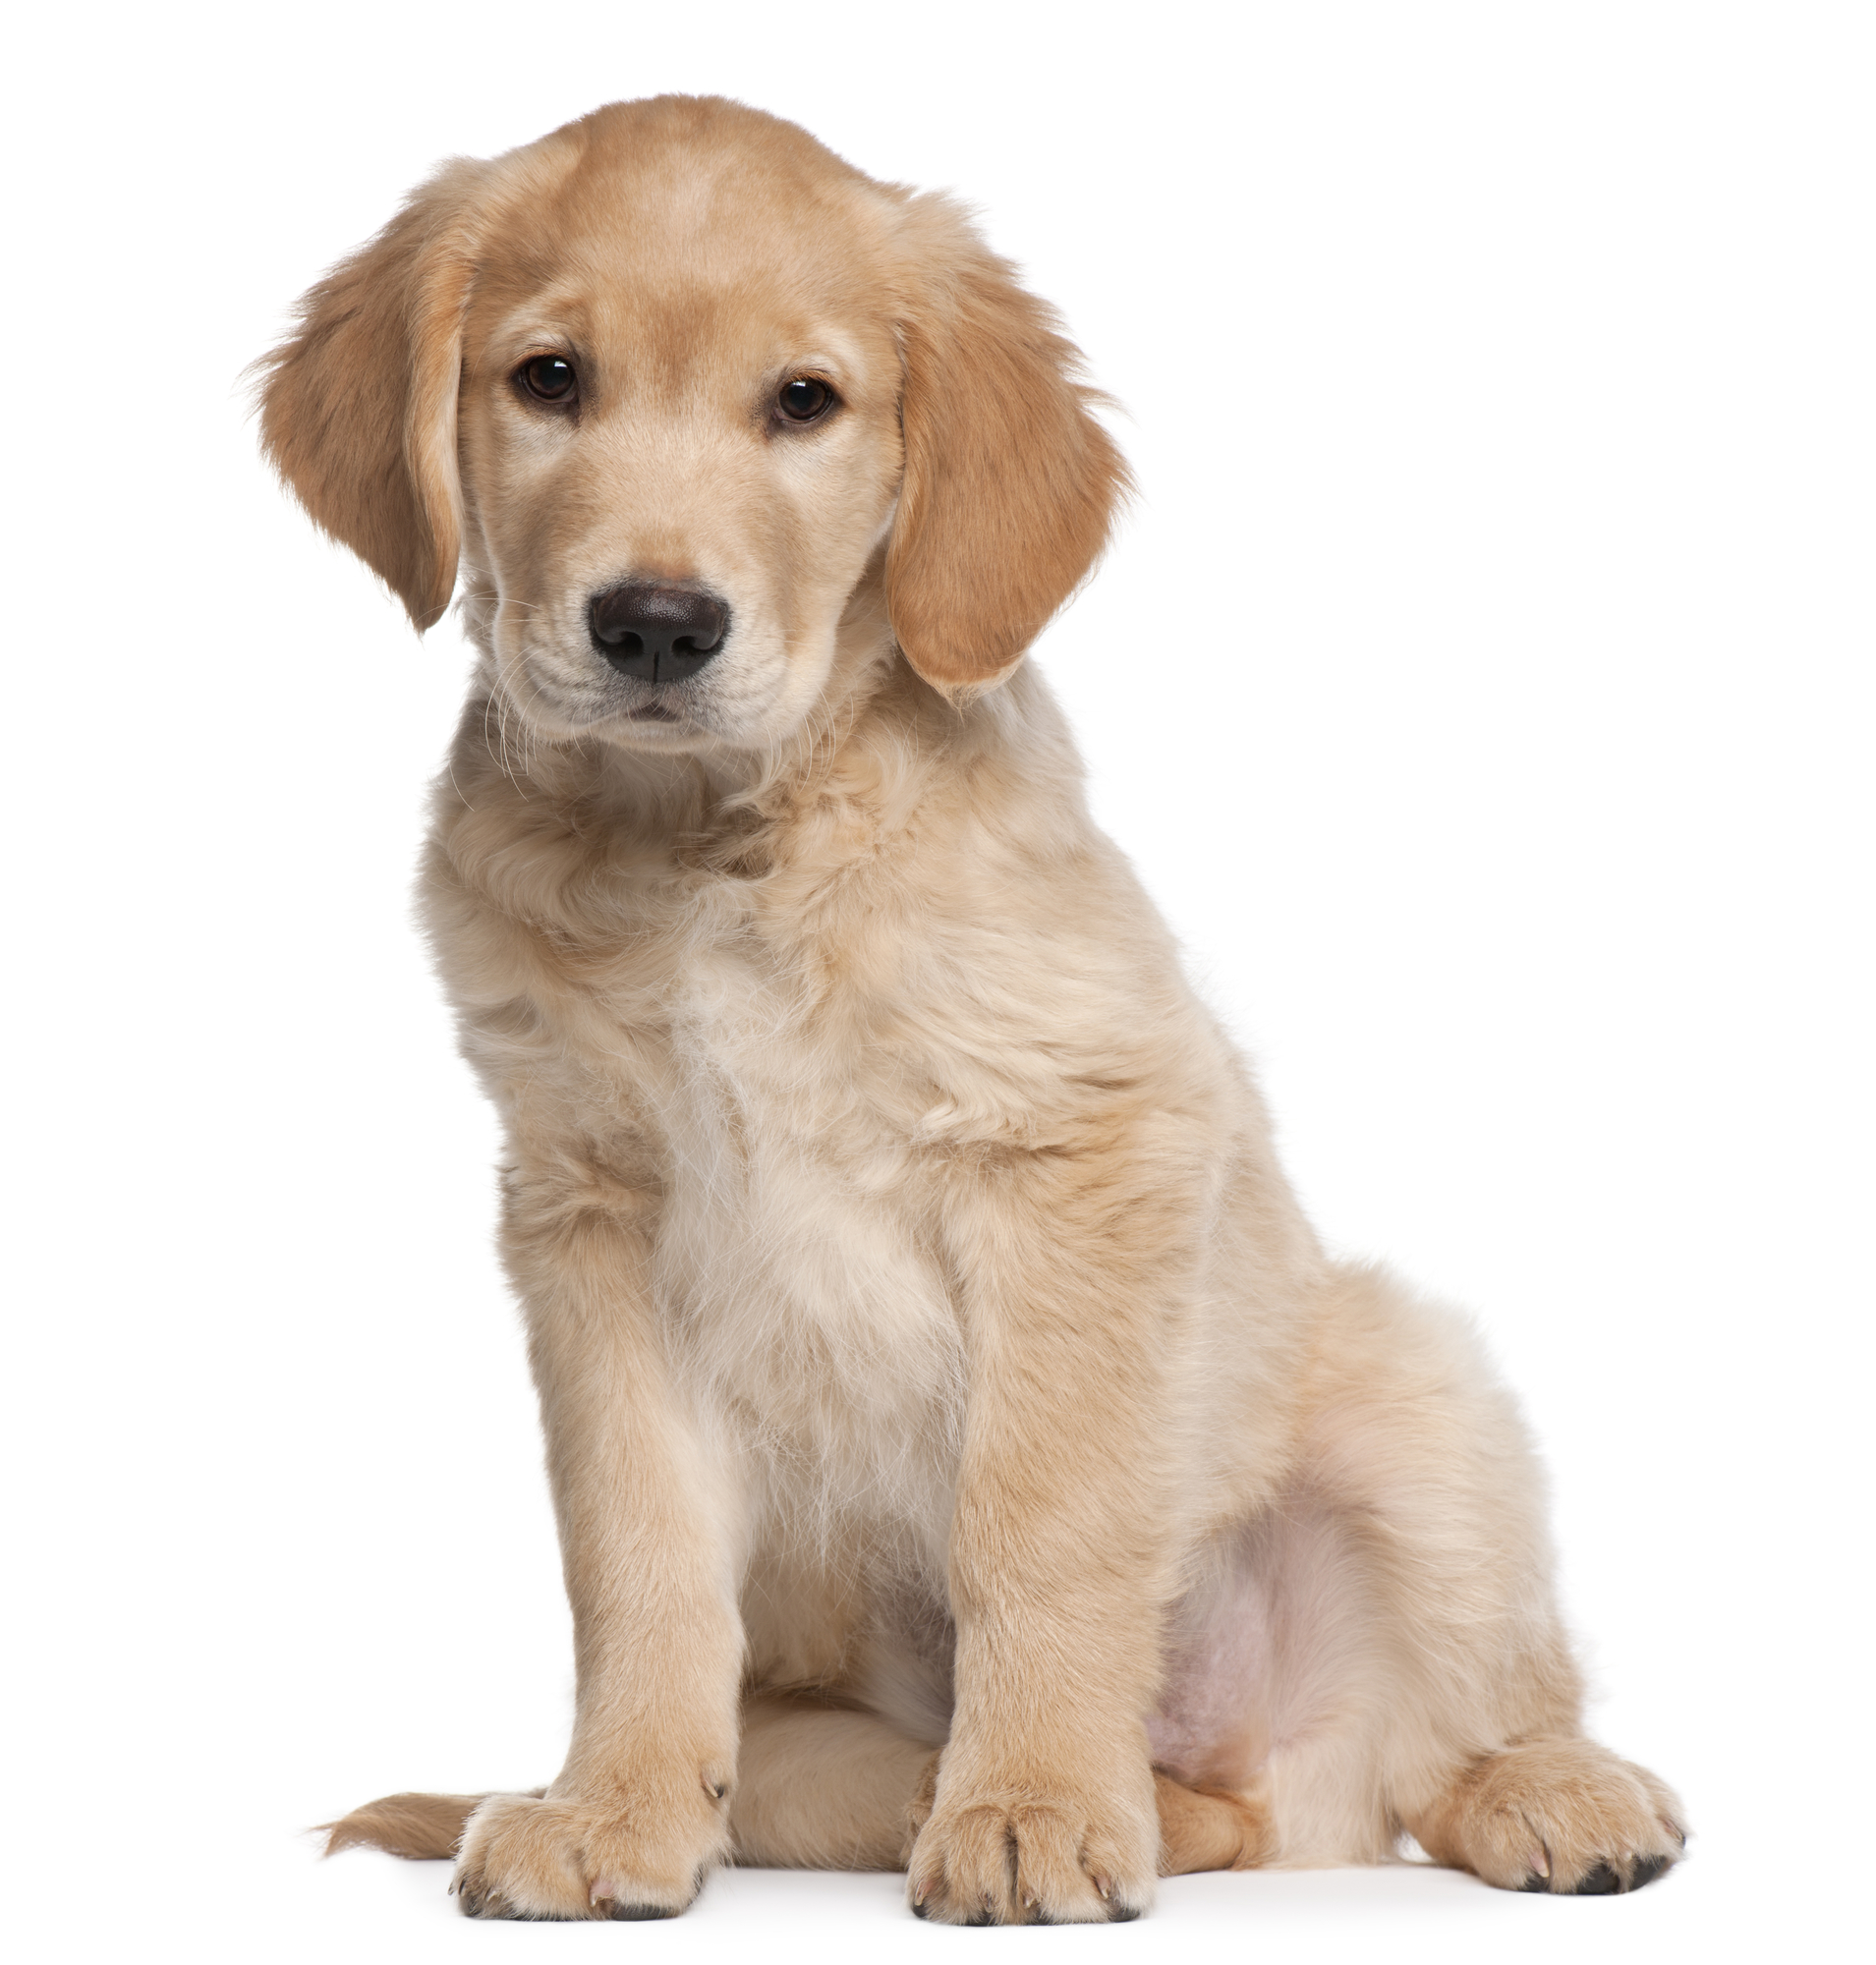 Smart Pune Billy Is An Gen Retriever Who Develops Between Visits To